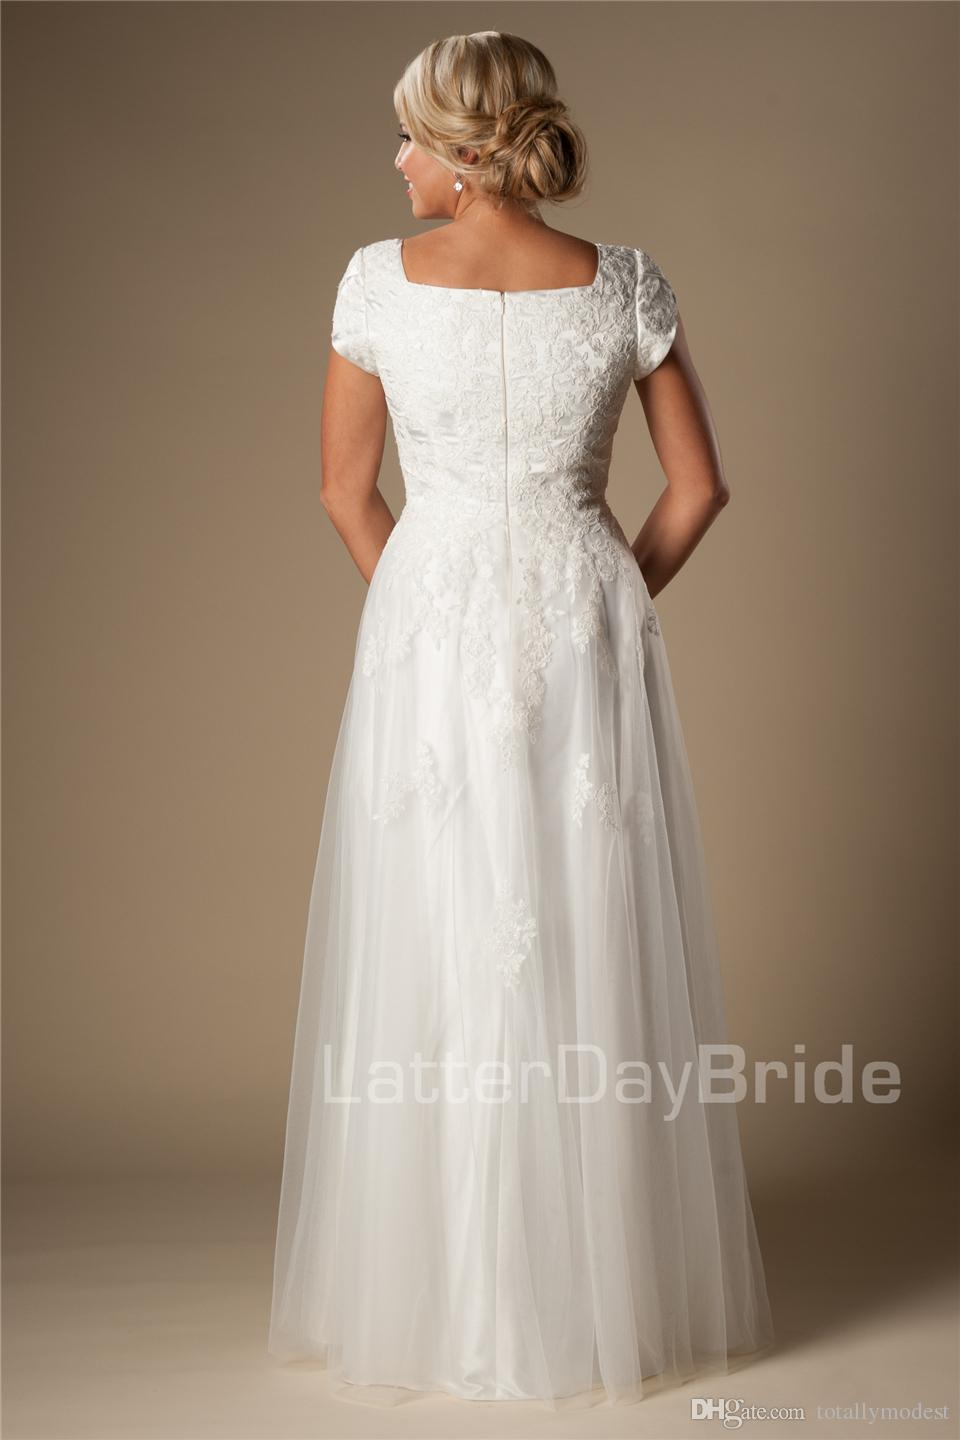 Ivory Lace Tulle Modest A-line Wedding Dresses With Cap Sleeves Queen Anne Neck Bridal Gowns A-line Long Floor Reception Wedding Gowns